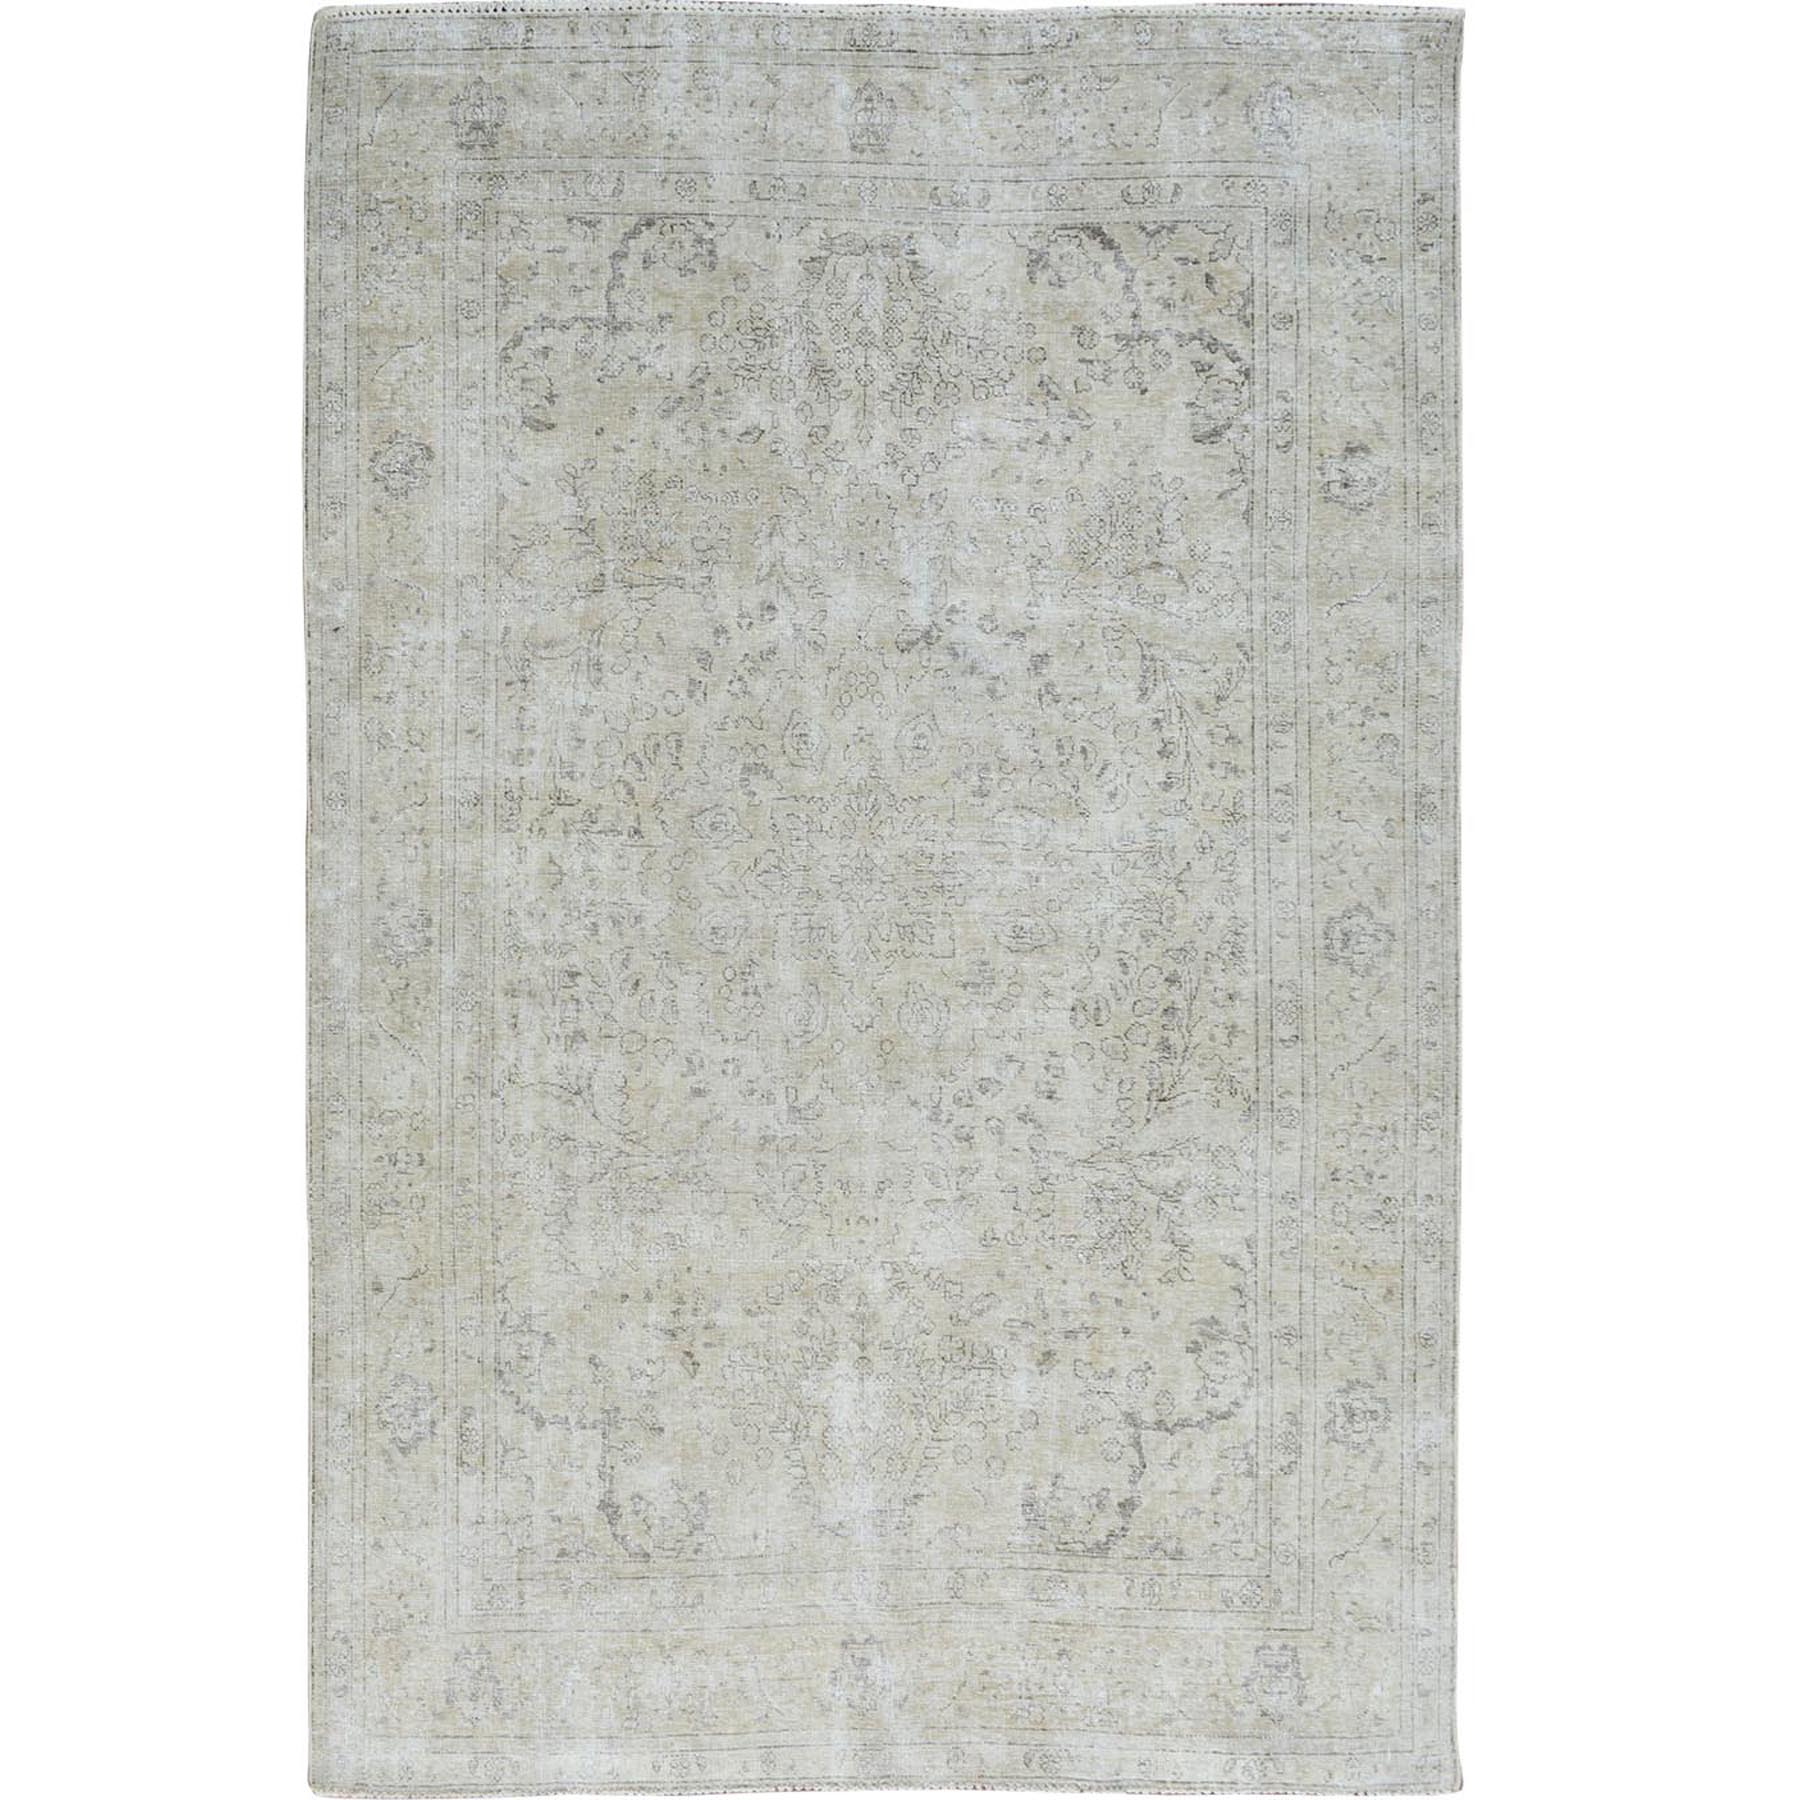 "6'9""x9'9"" White Wash Vintage and Worn Down Persian Tabriz Pure Wool Hand Woven Oriental Rug"